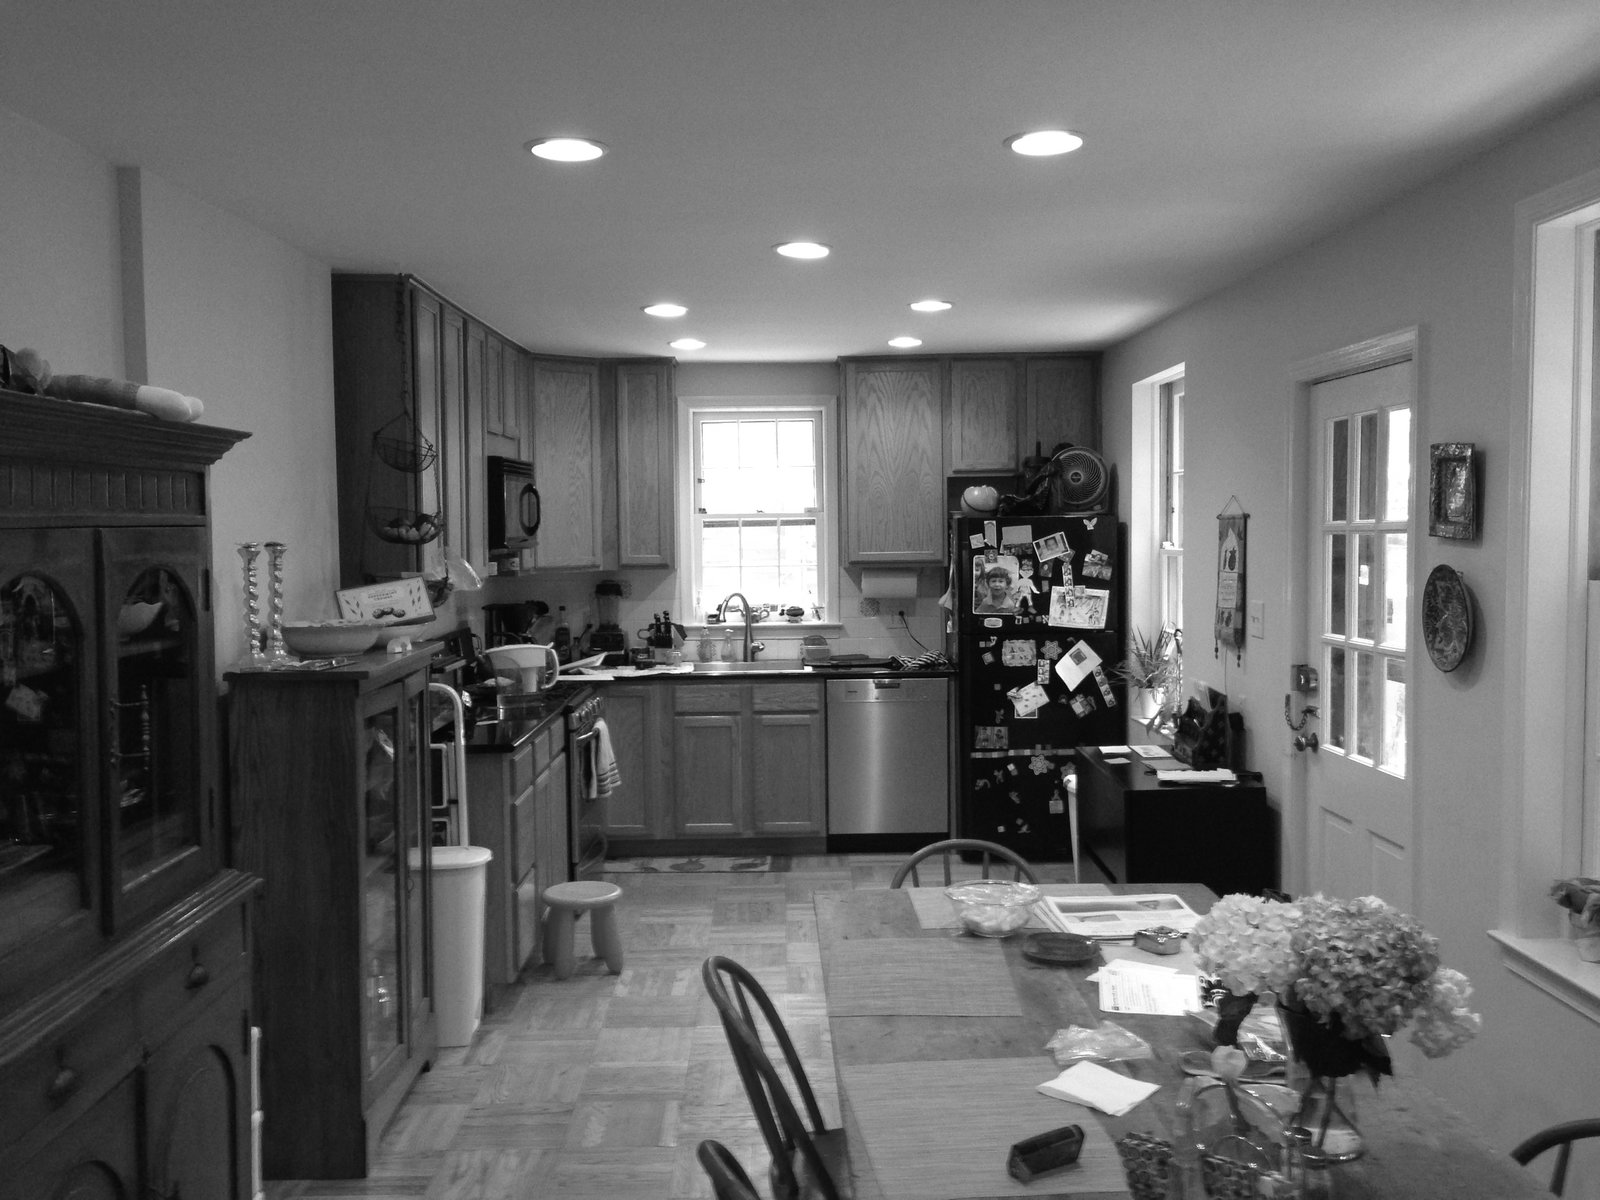 The original kitchen was cramped and cluttered.